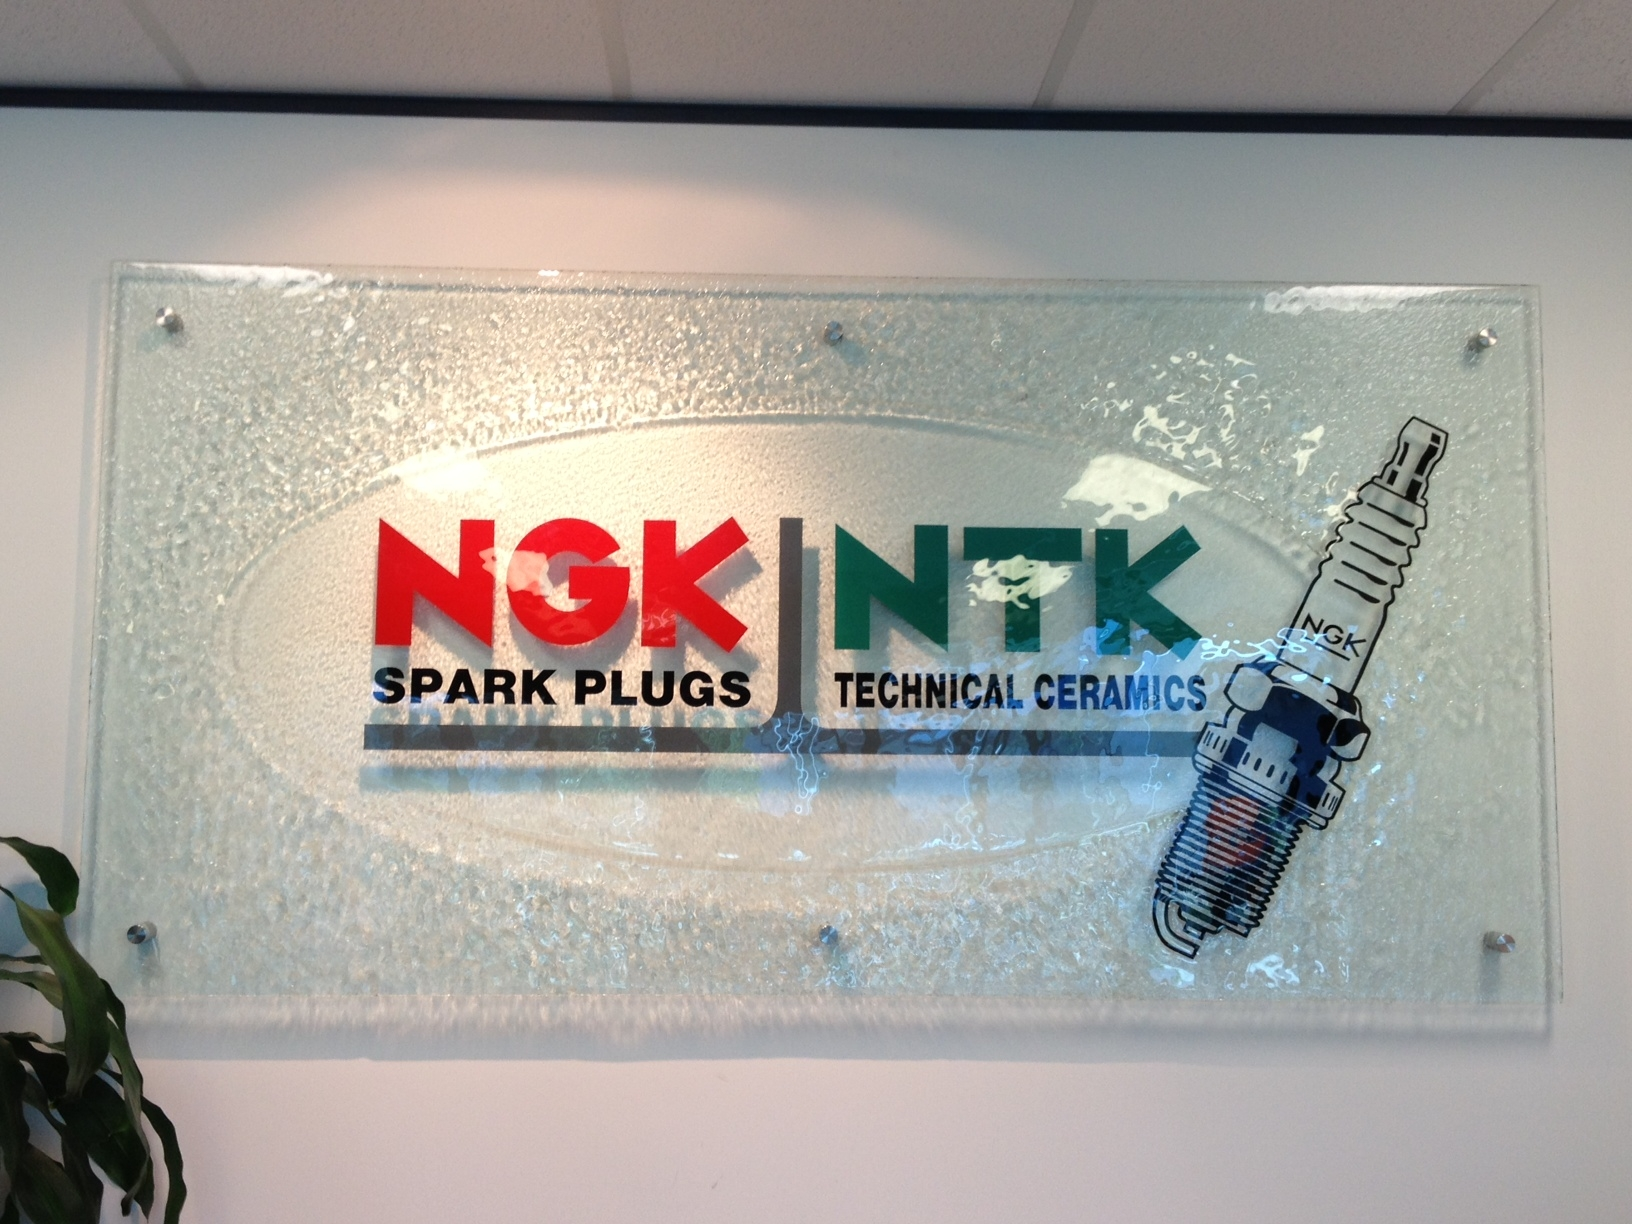 NGK-AU Entrance Glass Sign reception signage